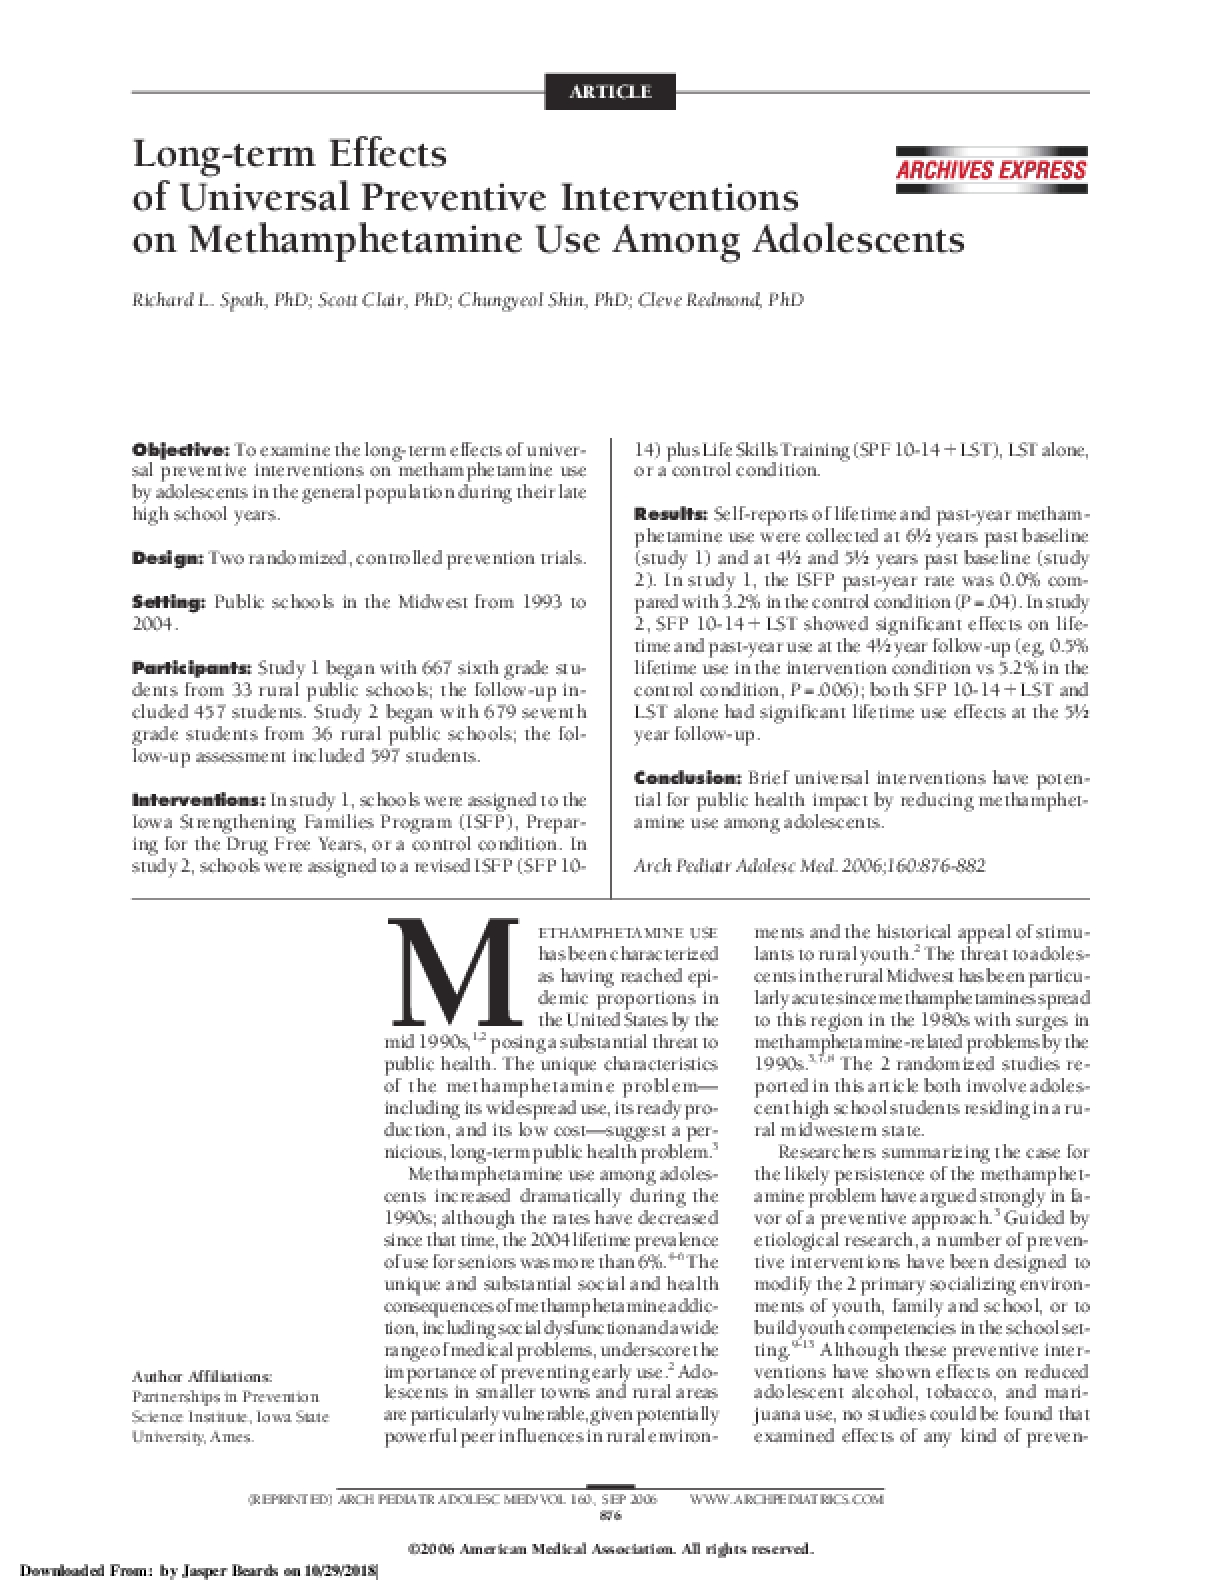 Long-term Effects of Universal Preventative Interventions on Methamphetamine Use among Adolescents